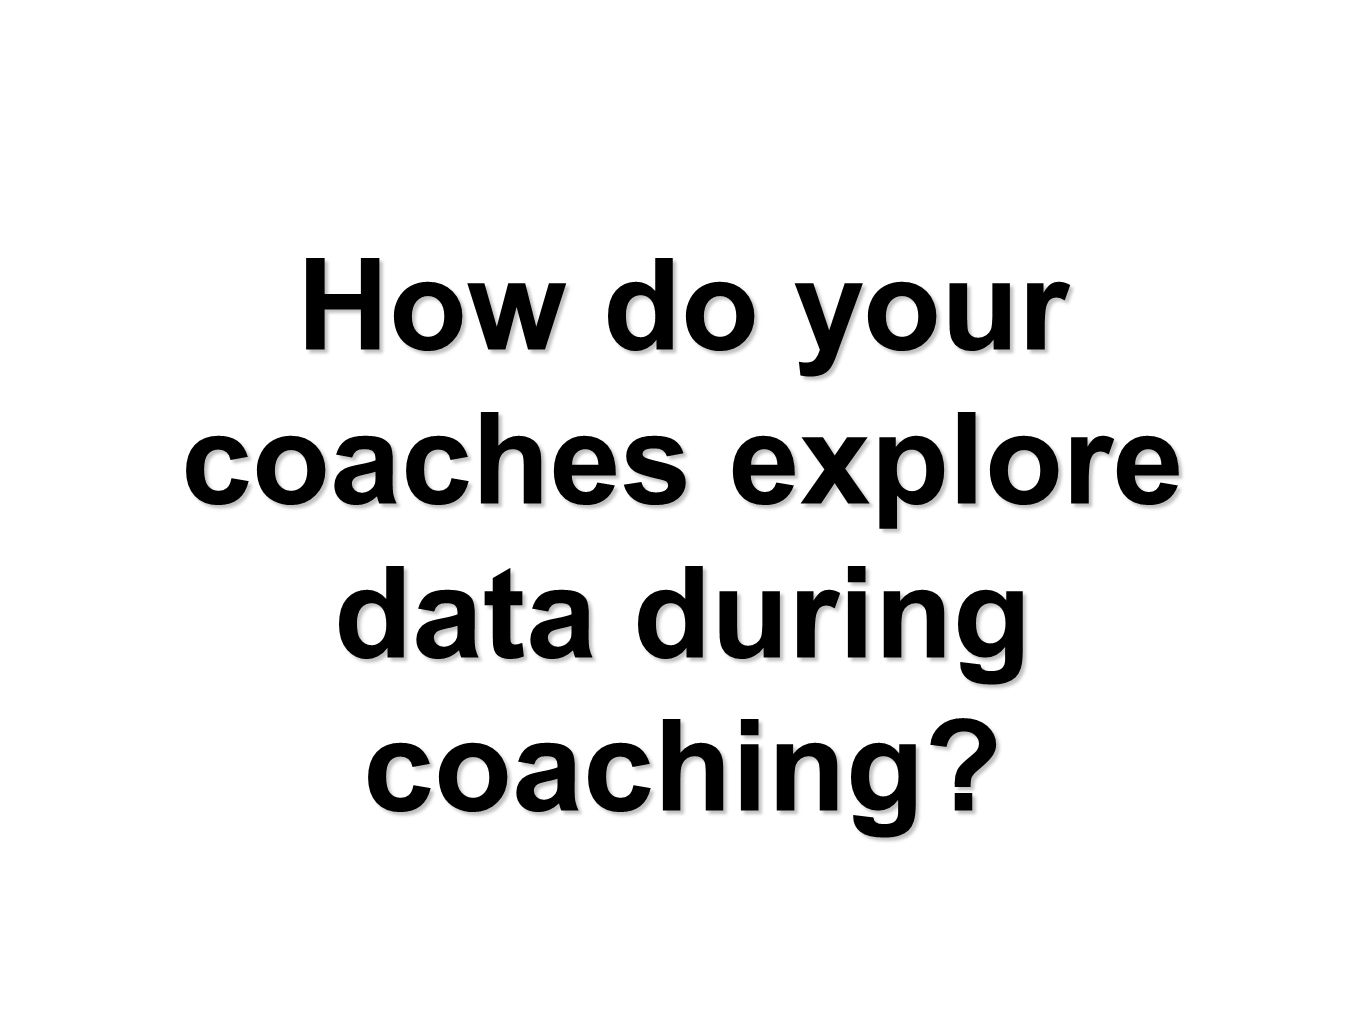 How do your coaches explore data during coaching